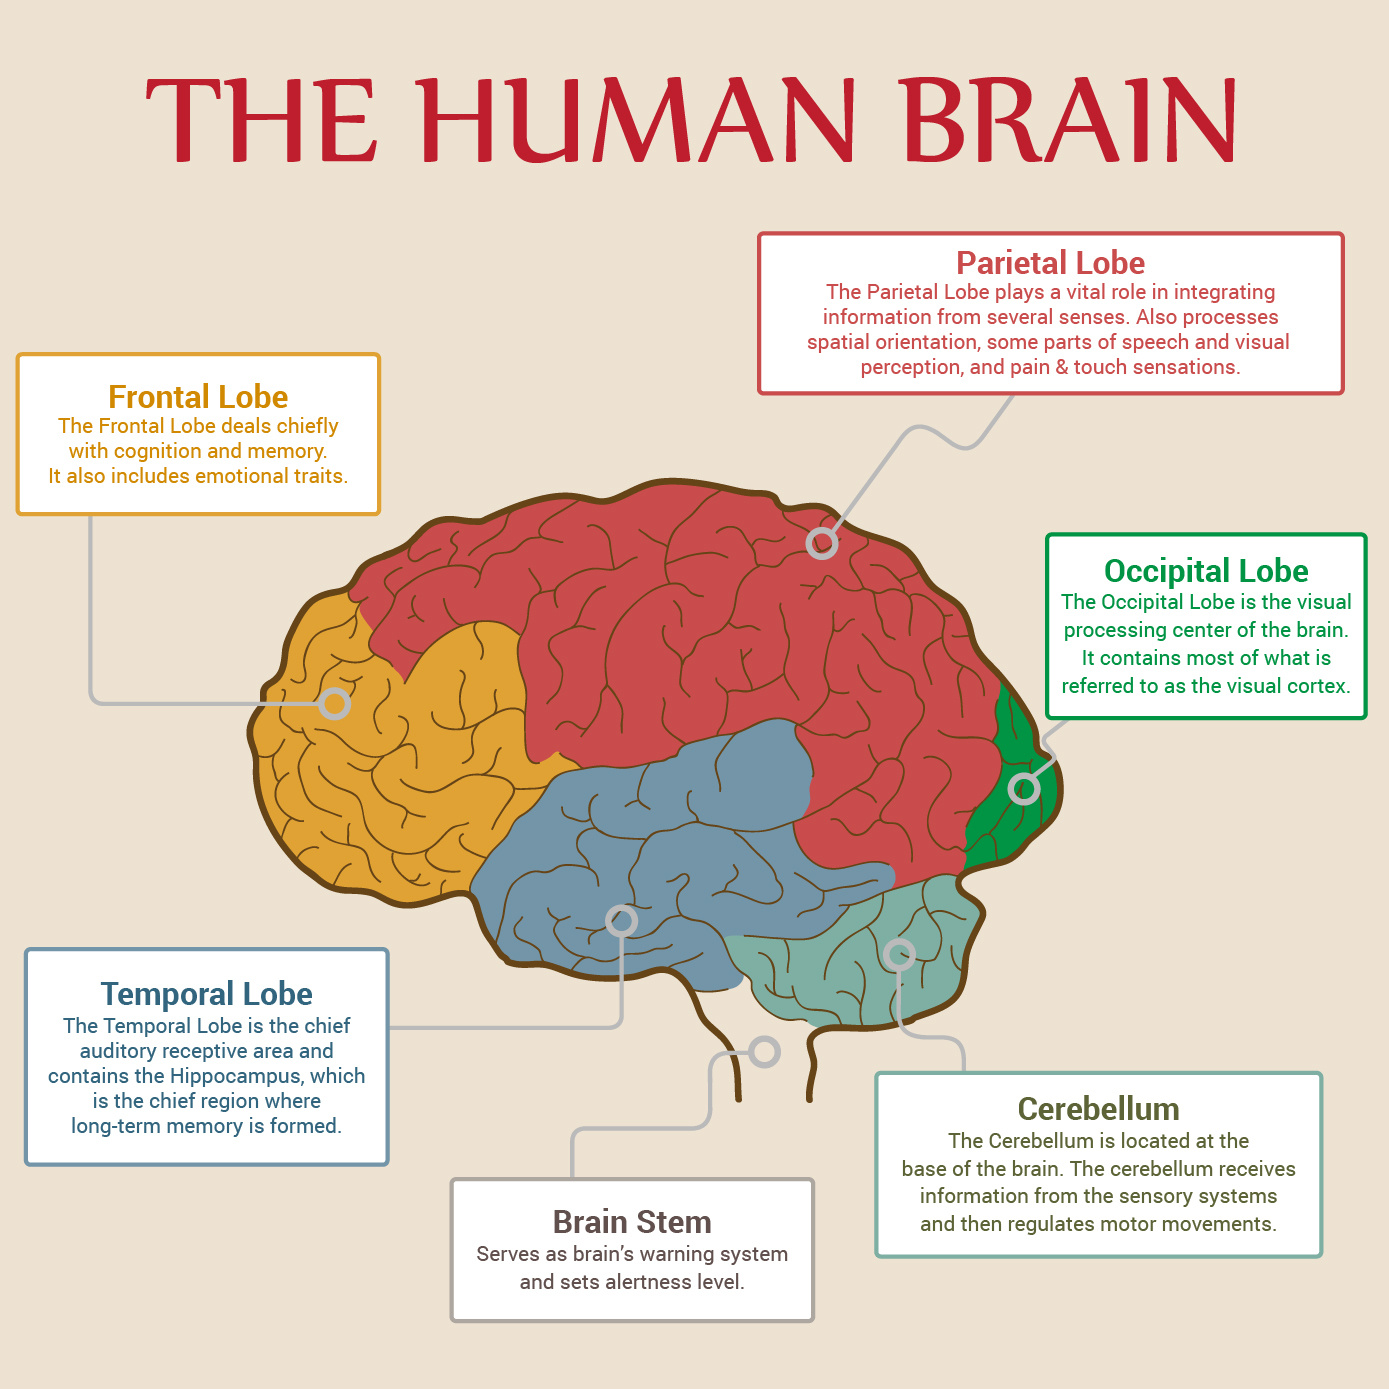 Human brain parts labeled